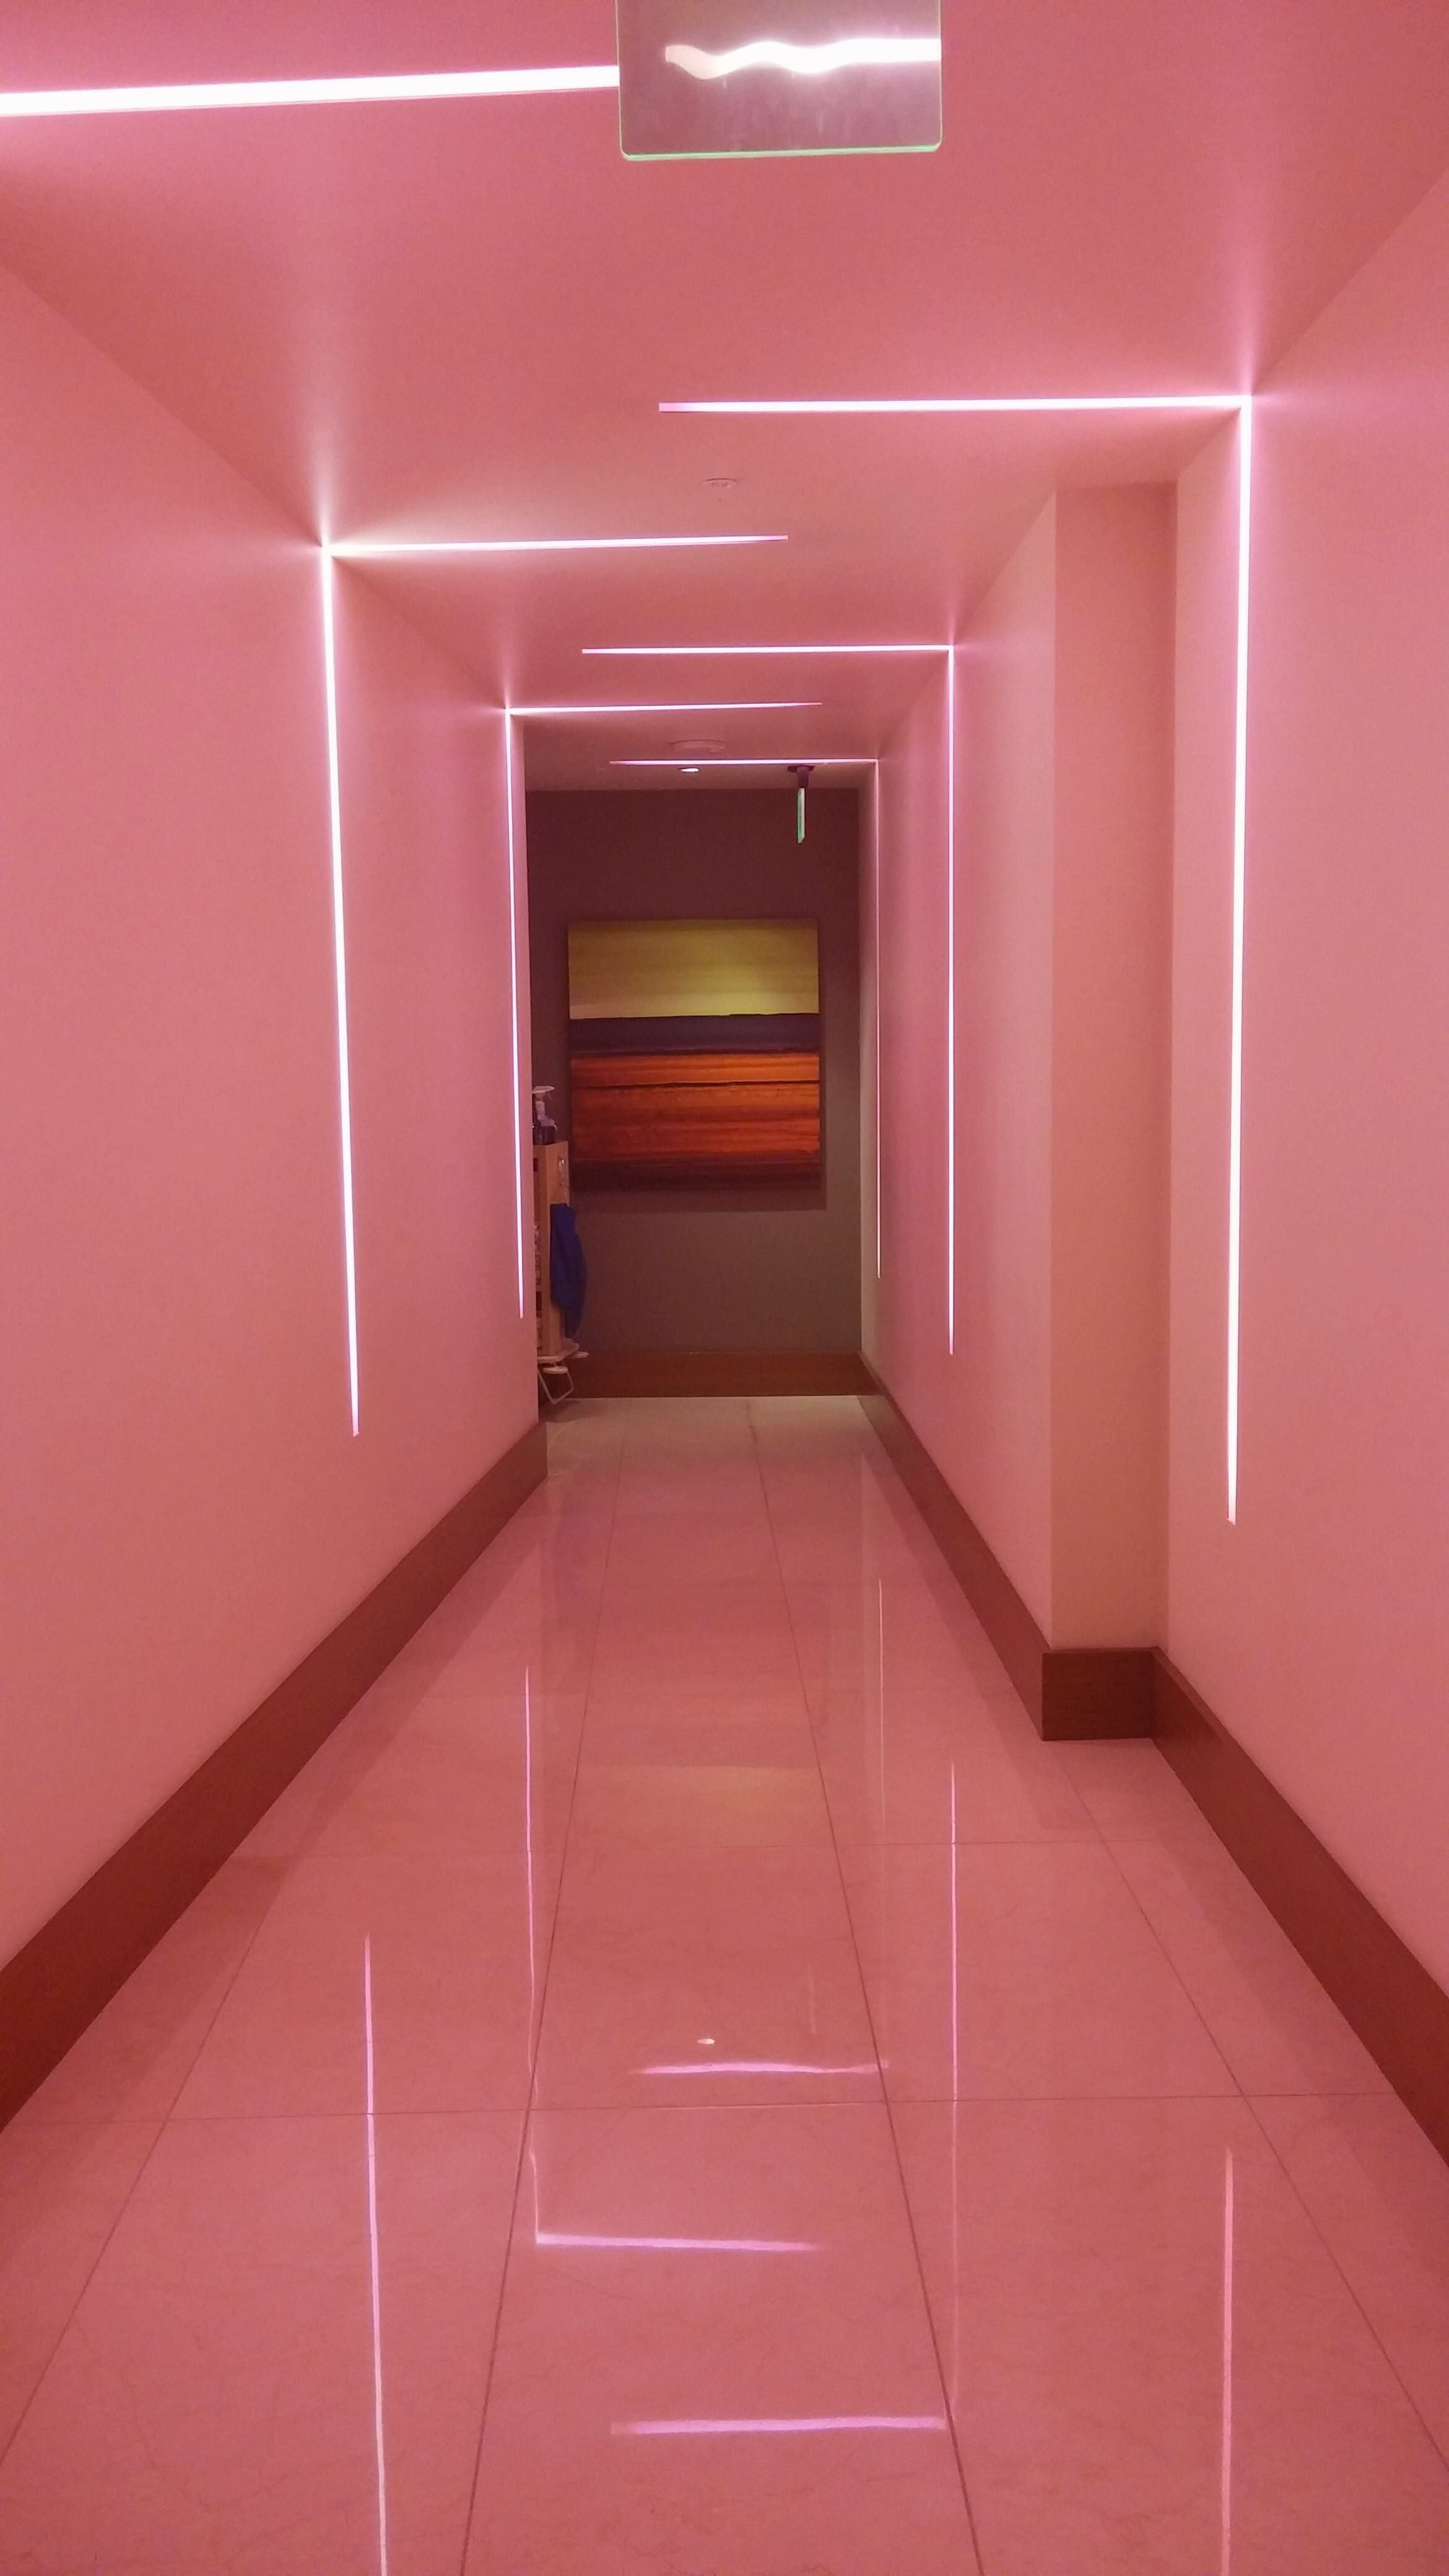 Best Vaporwave Room Sick Of All These People Talking Sick Of 400 x 300